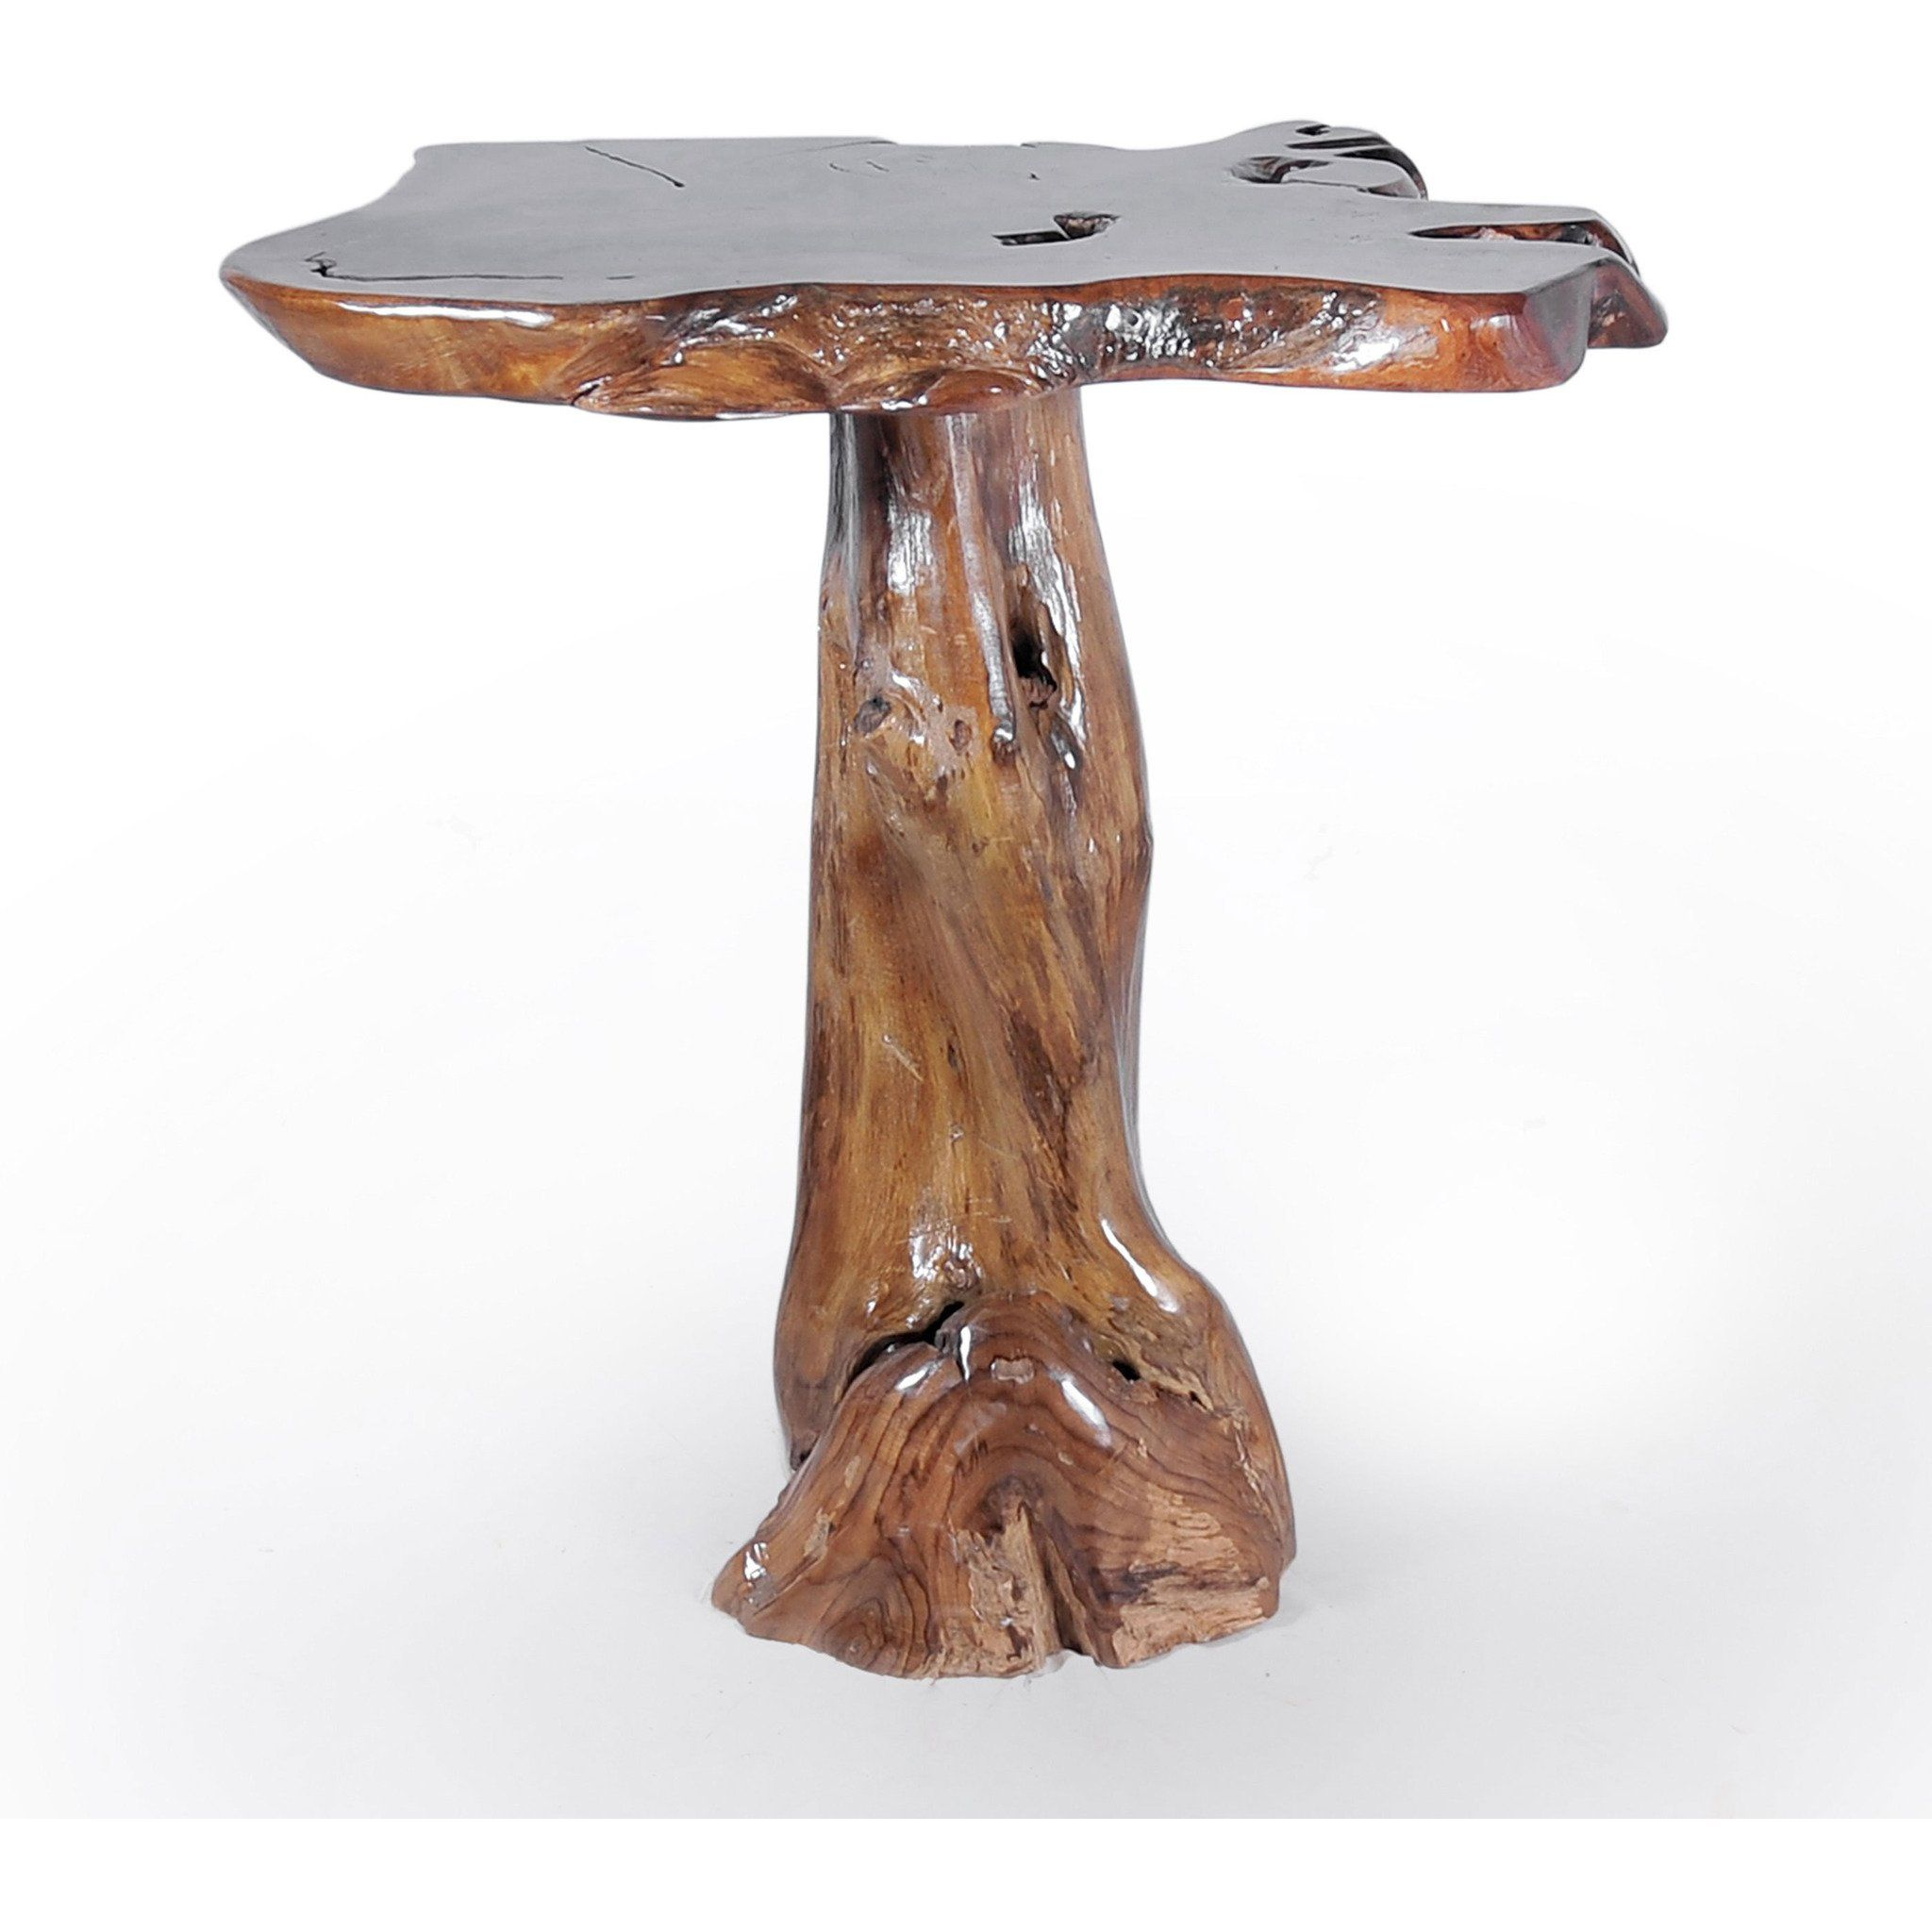 Teak Wood Slab Rustic Bar Table By Chic Teak Only 605 41 Dining Table Living Room Furniture Tables Dining Table In Kitchen